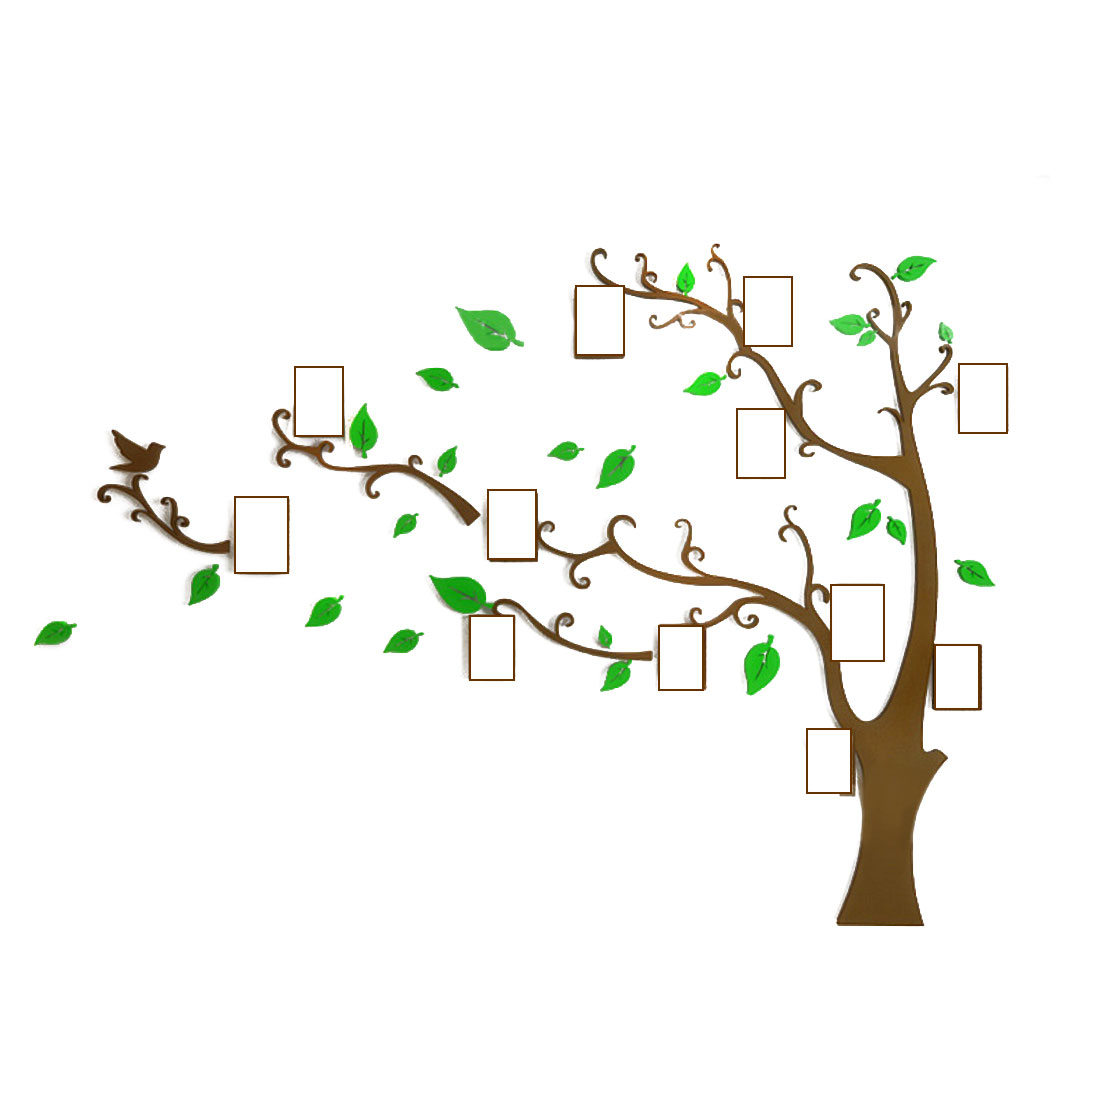 Home Room Acrylic Tree Photo Frame Design DIY 3D Wall Sticker Green 130 x 100cm